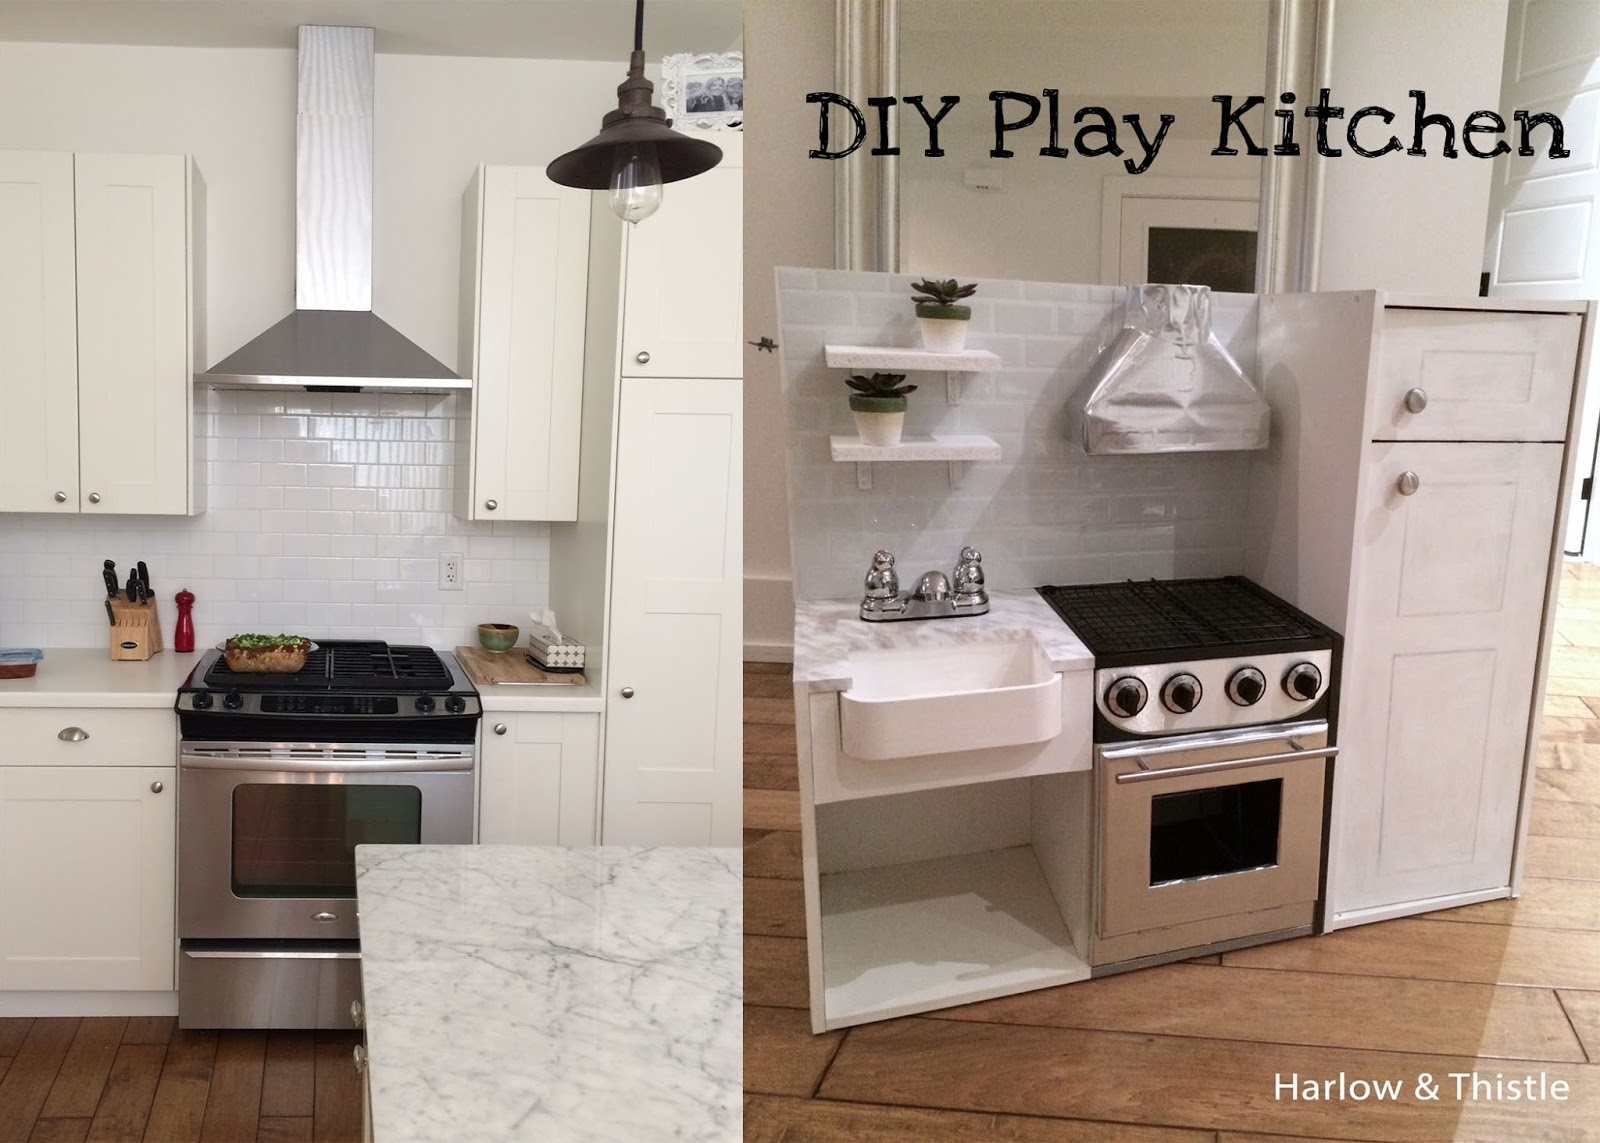 Diy play kitchen harlow thistle home design for Diy play kitchen ideas